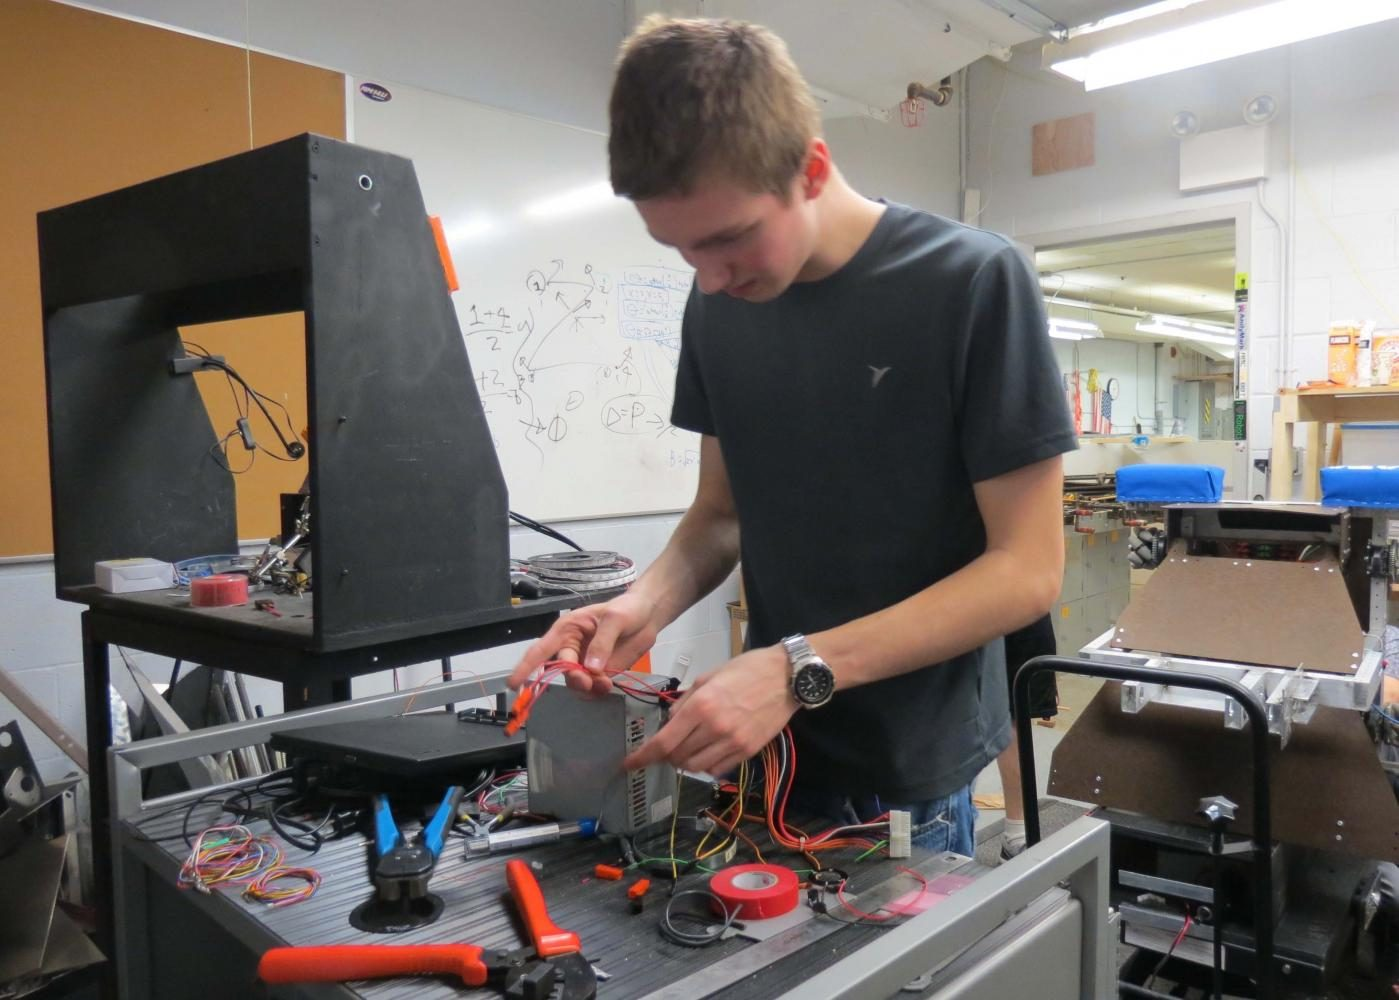 George Hare brings leadership to Robotics Club